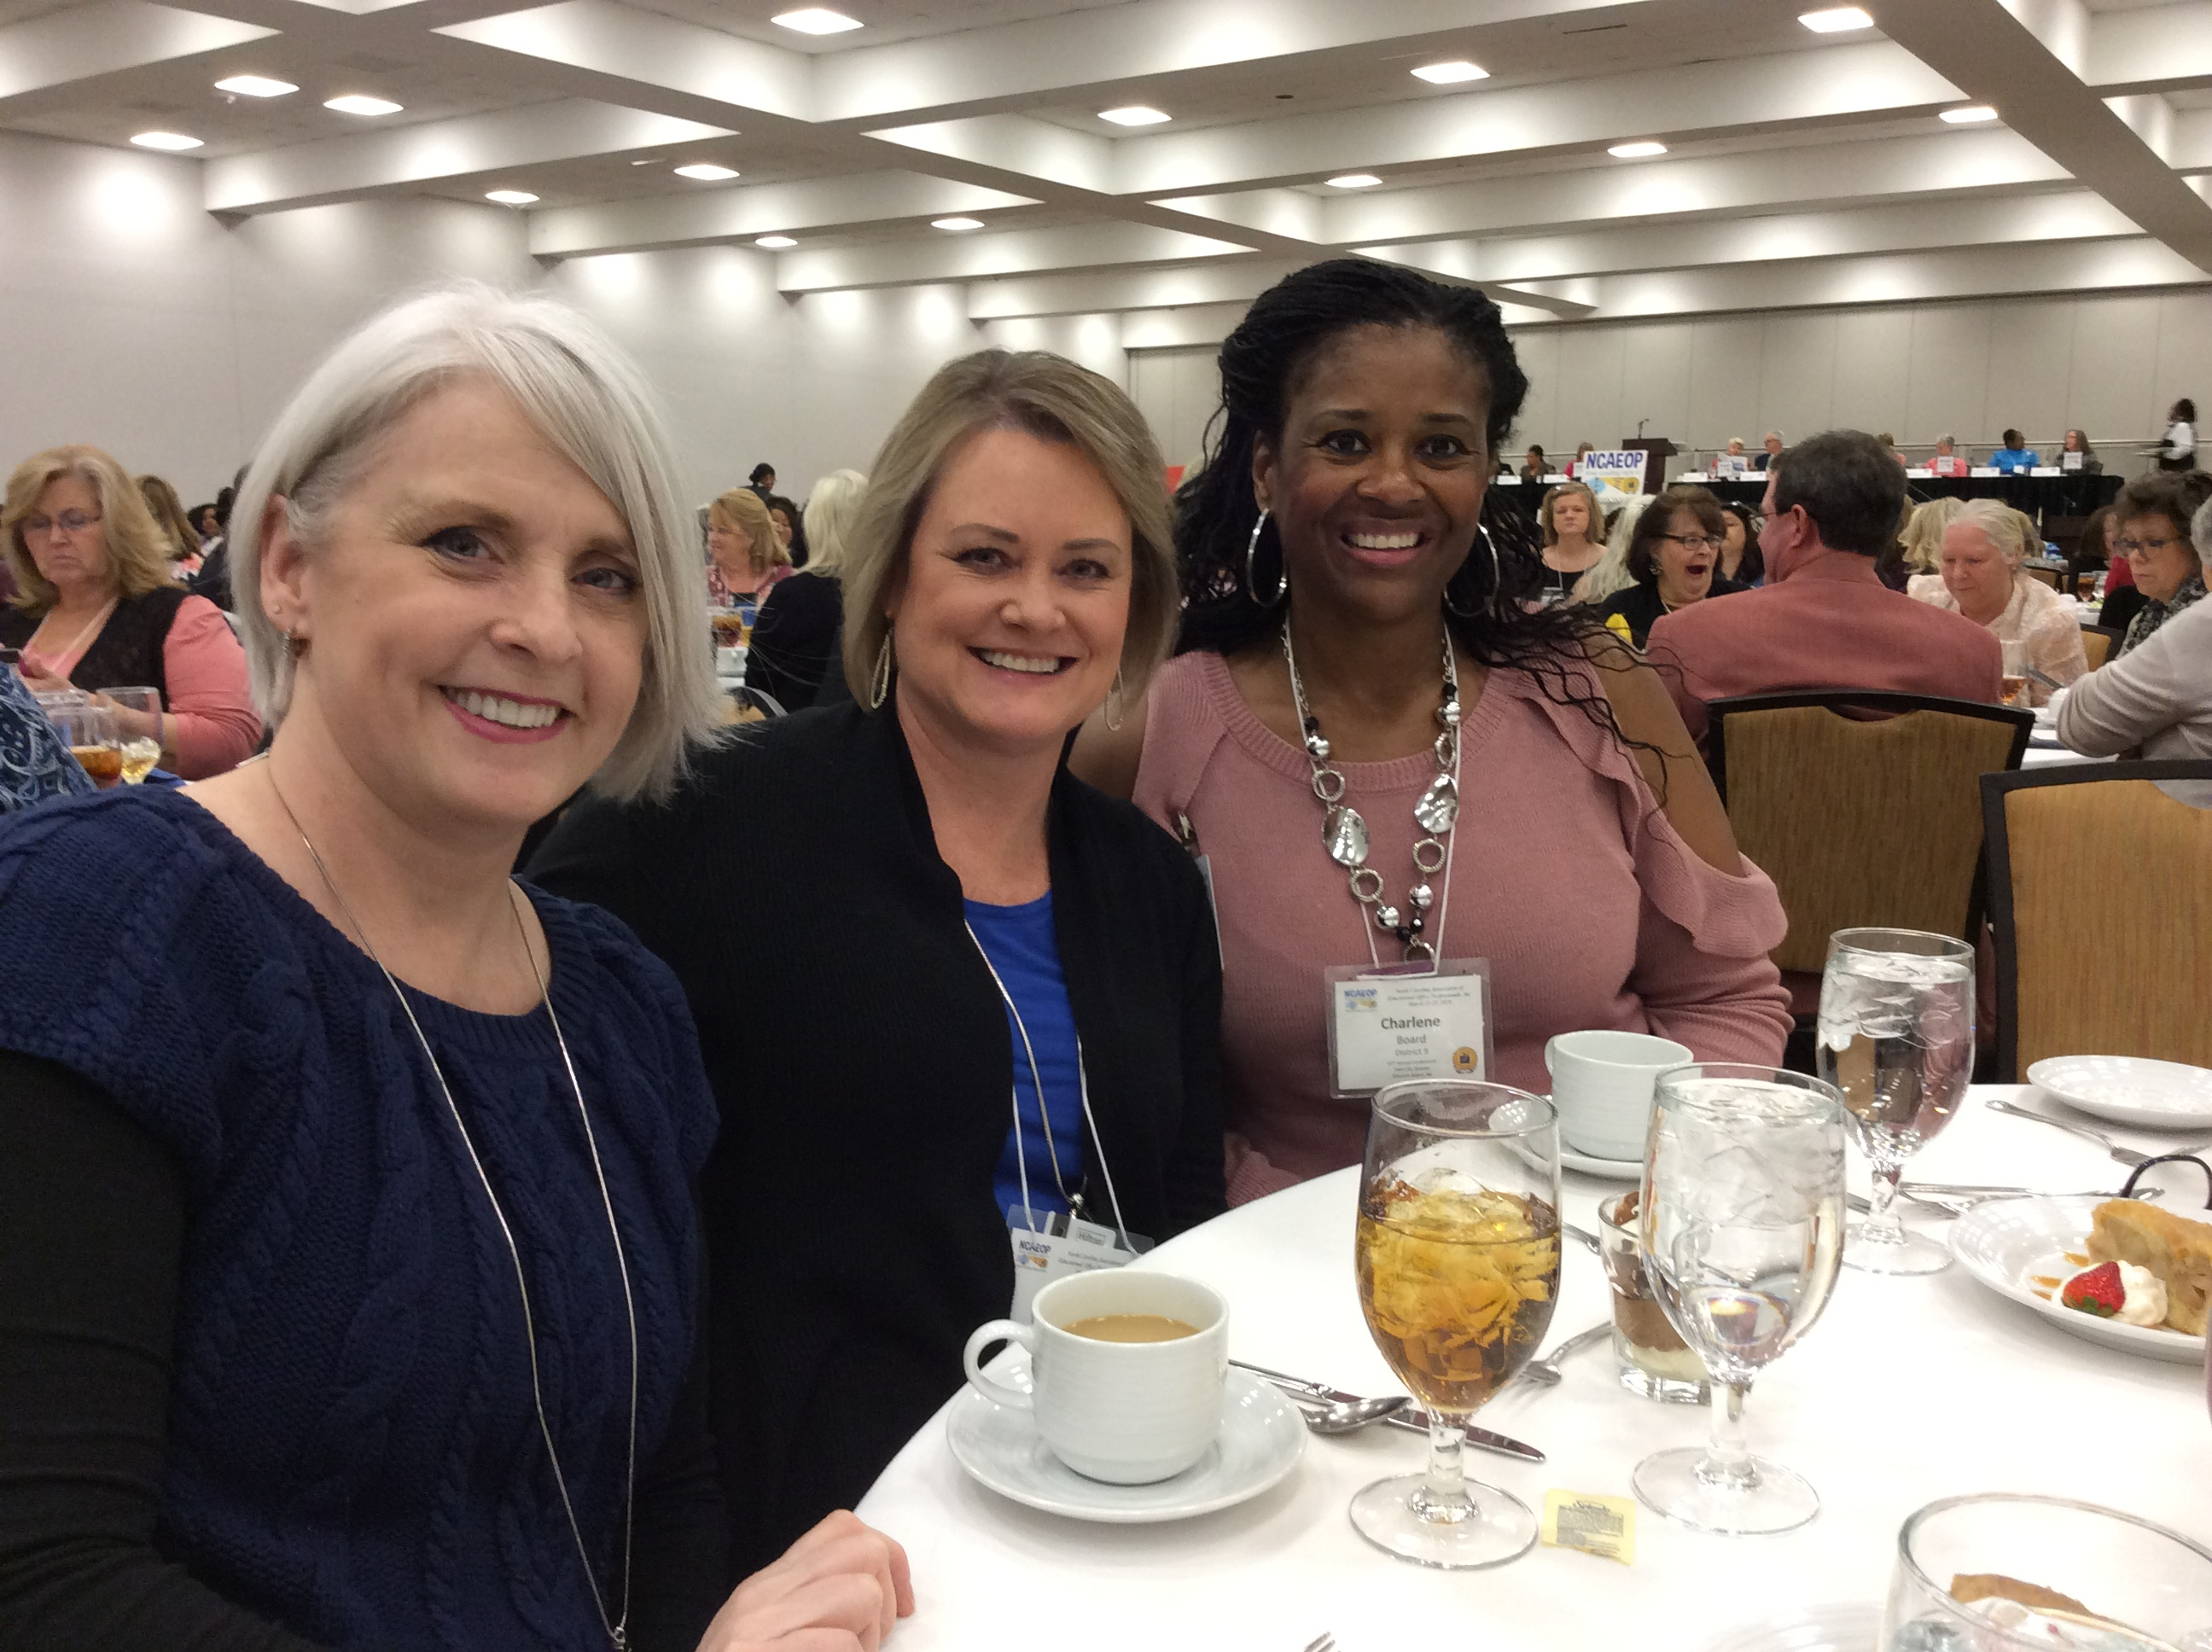 Stacey came for Heidi's PSP Award Luncheon